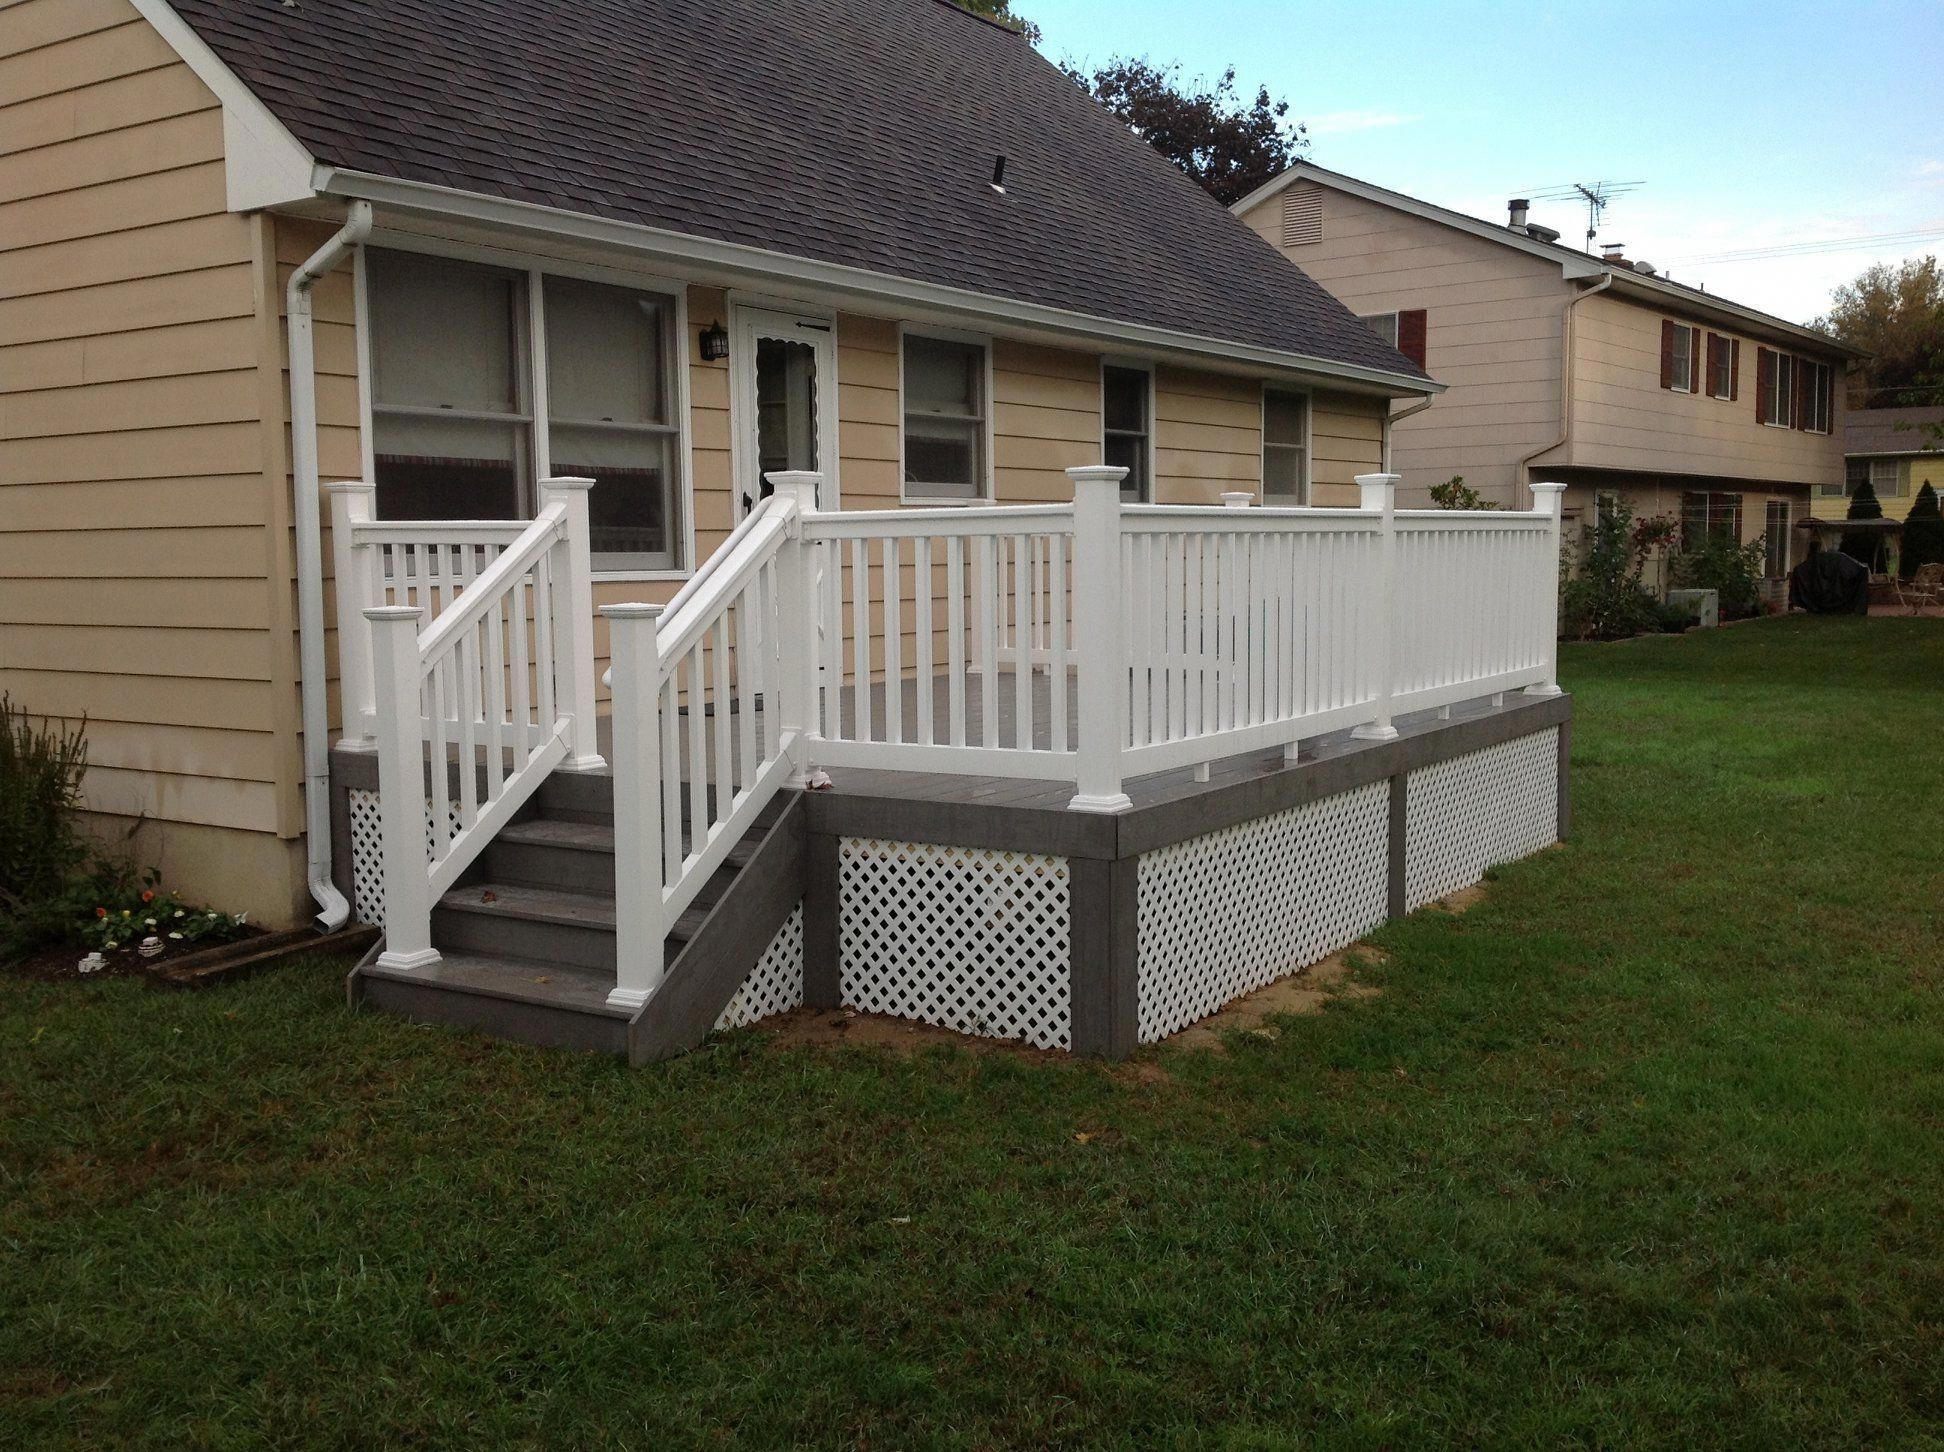 12 X16 First Story Trex Deck With White Vinyl Railing System And One Set Of Steps Leading To Ground Level Installed On Yo Building A Deck Diy Deck Deck Design